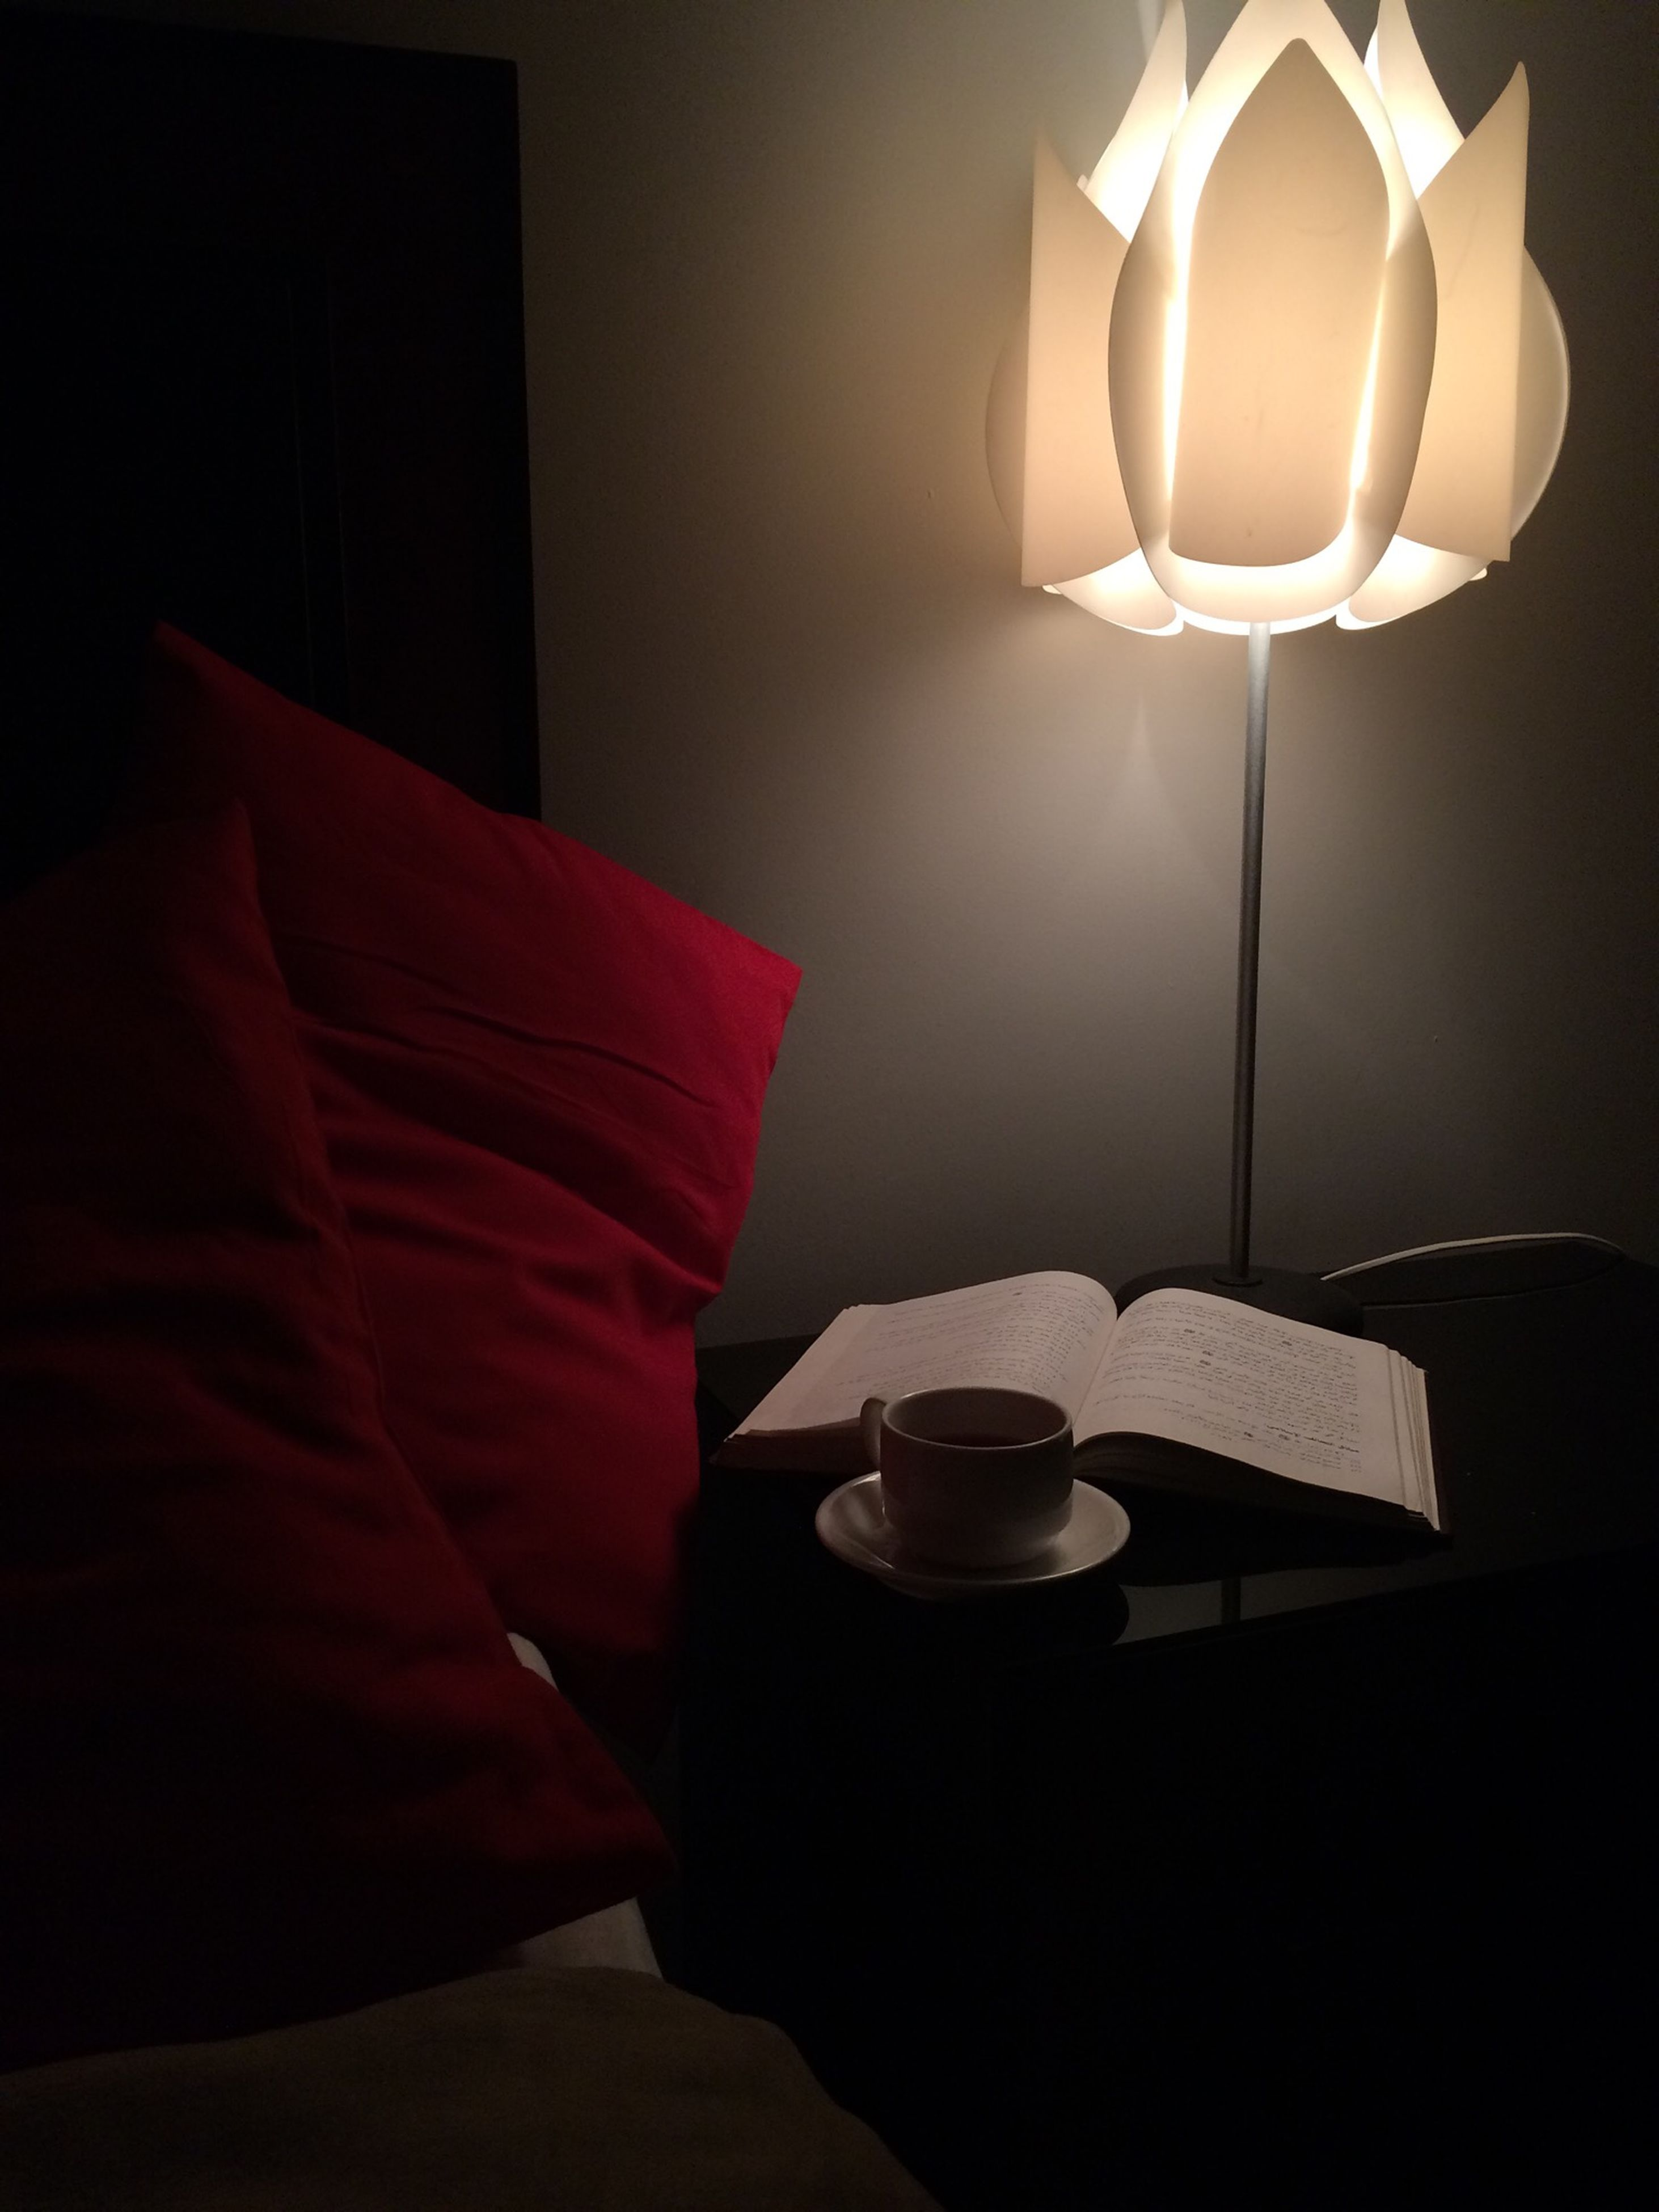 indoors, illuminated, home interior, table, lighting equipment, chair, electric lamp, absence, room, empty, domestic room, dark, lamp, darkroom, home showcase interior, lit, furniture, wall - building feature, still life, electric light